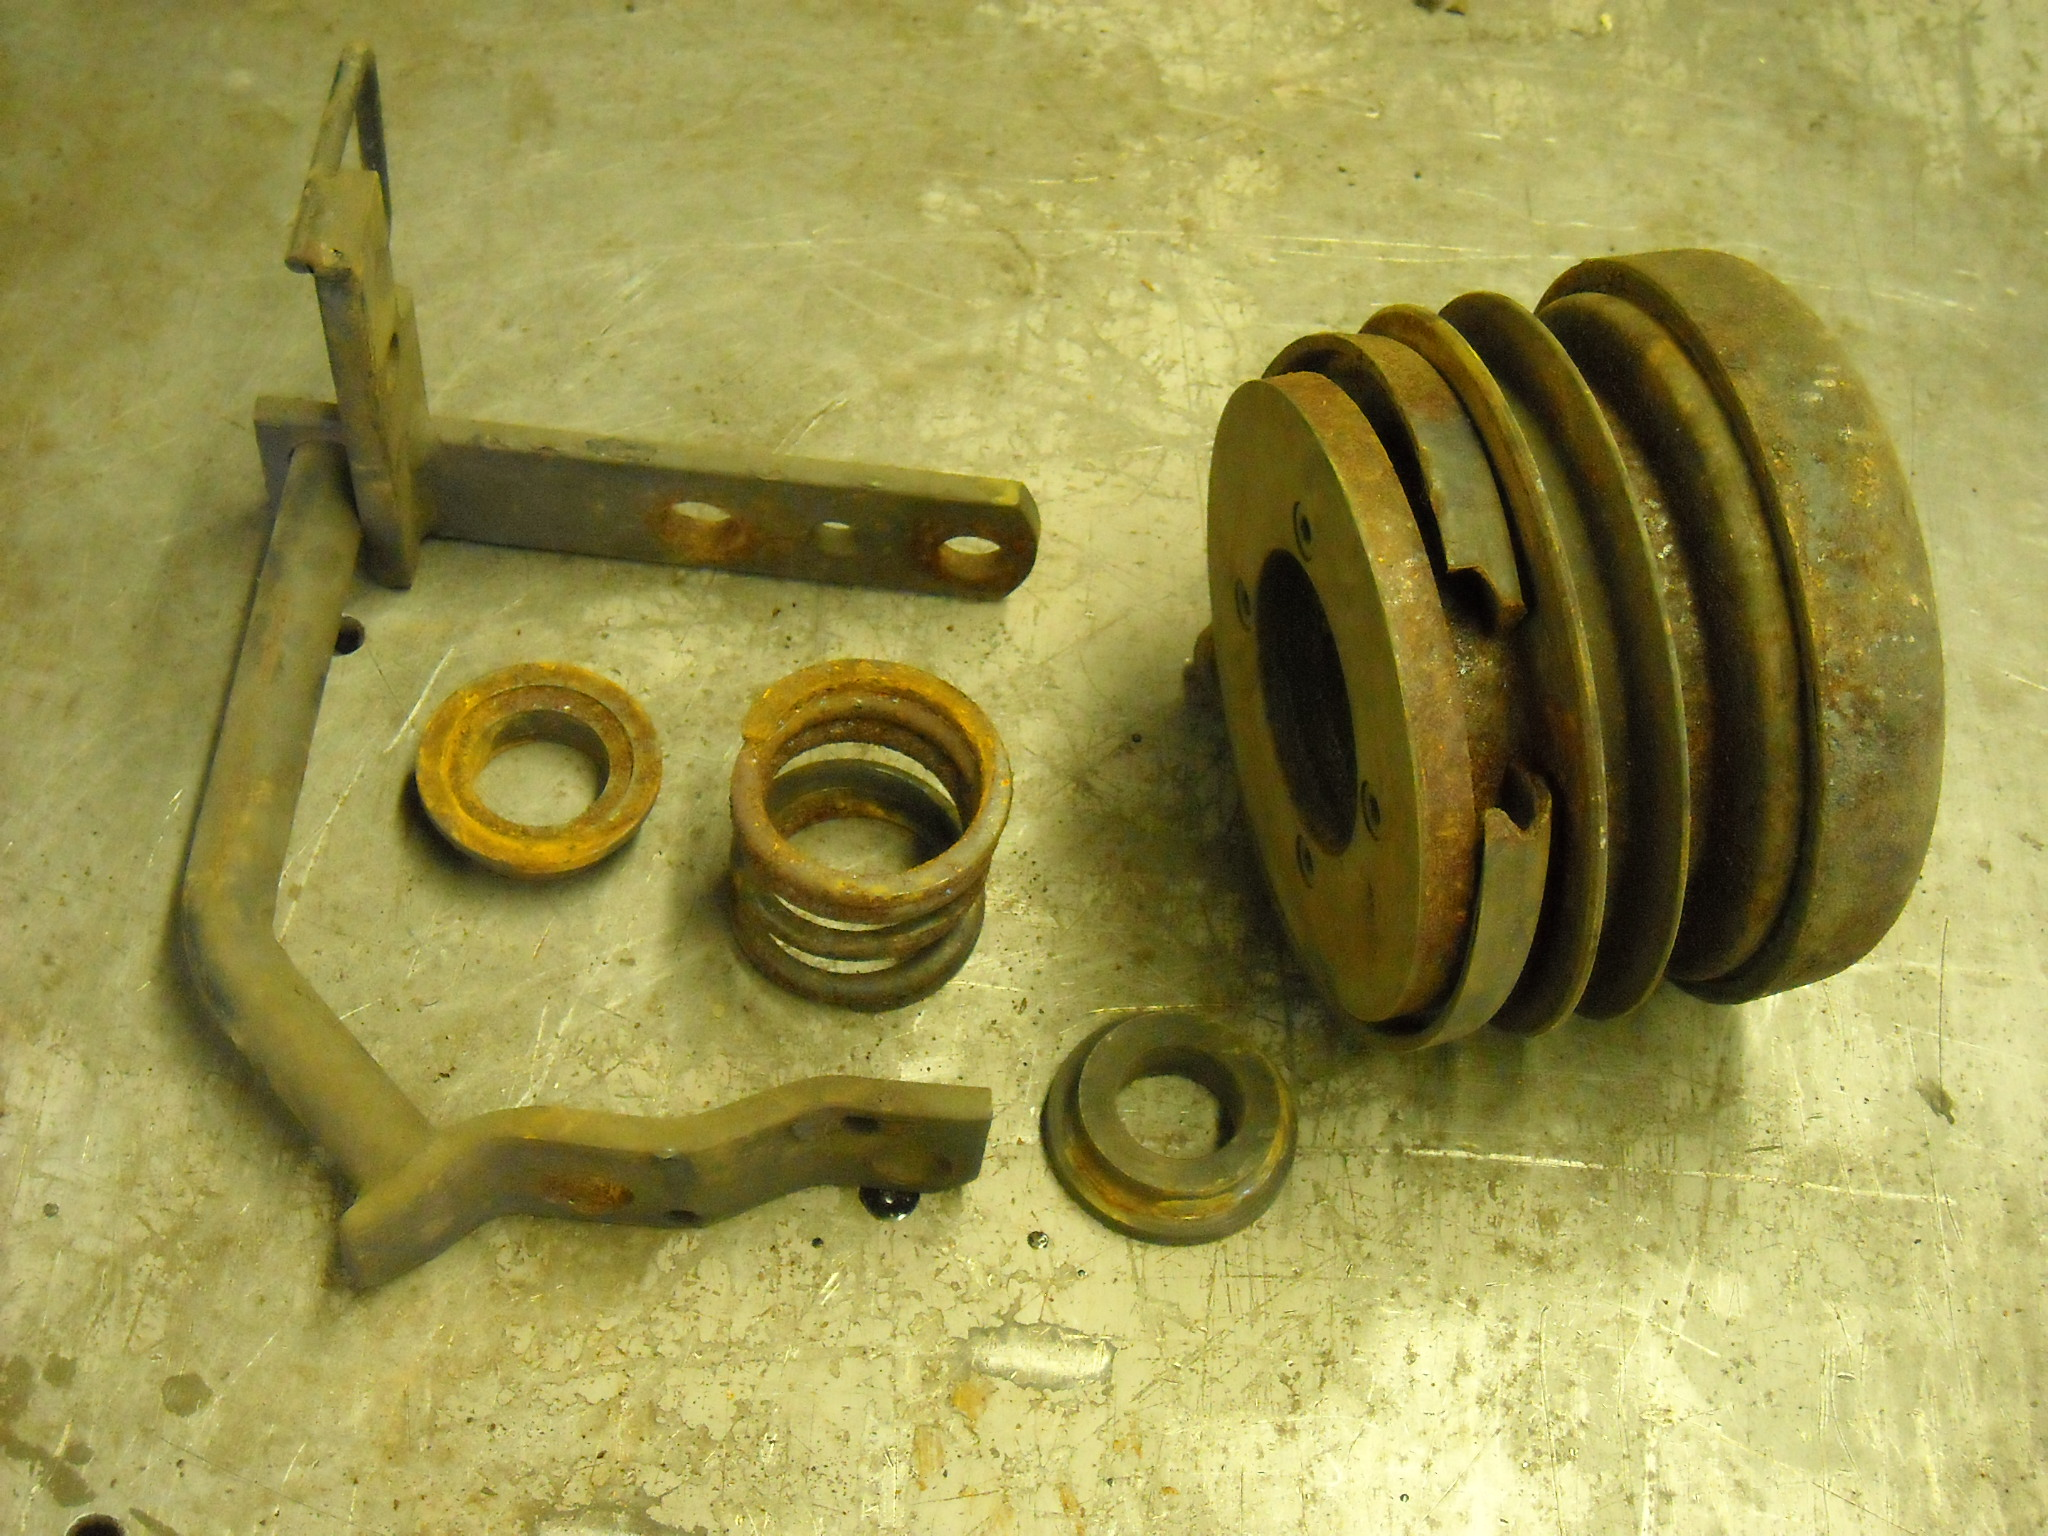 Wiring Harness Tractor Attachments John Deere 50 Tractor